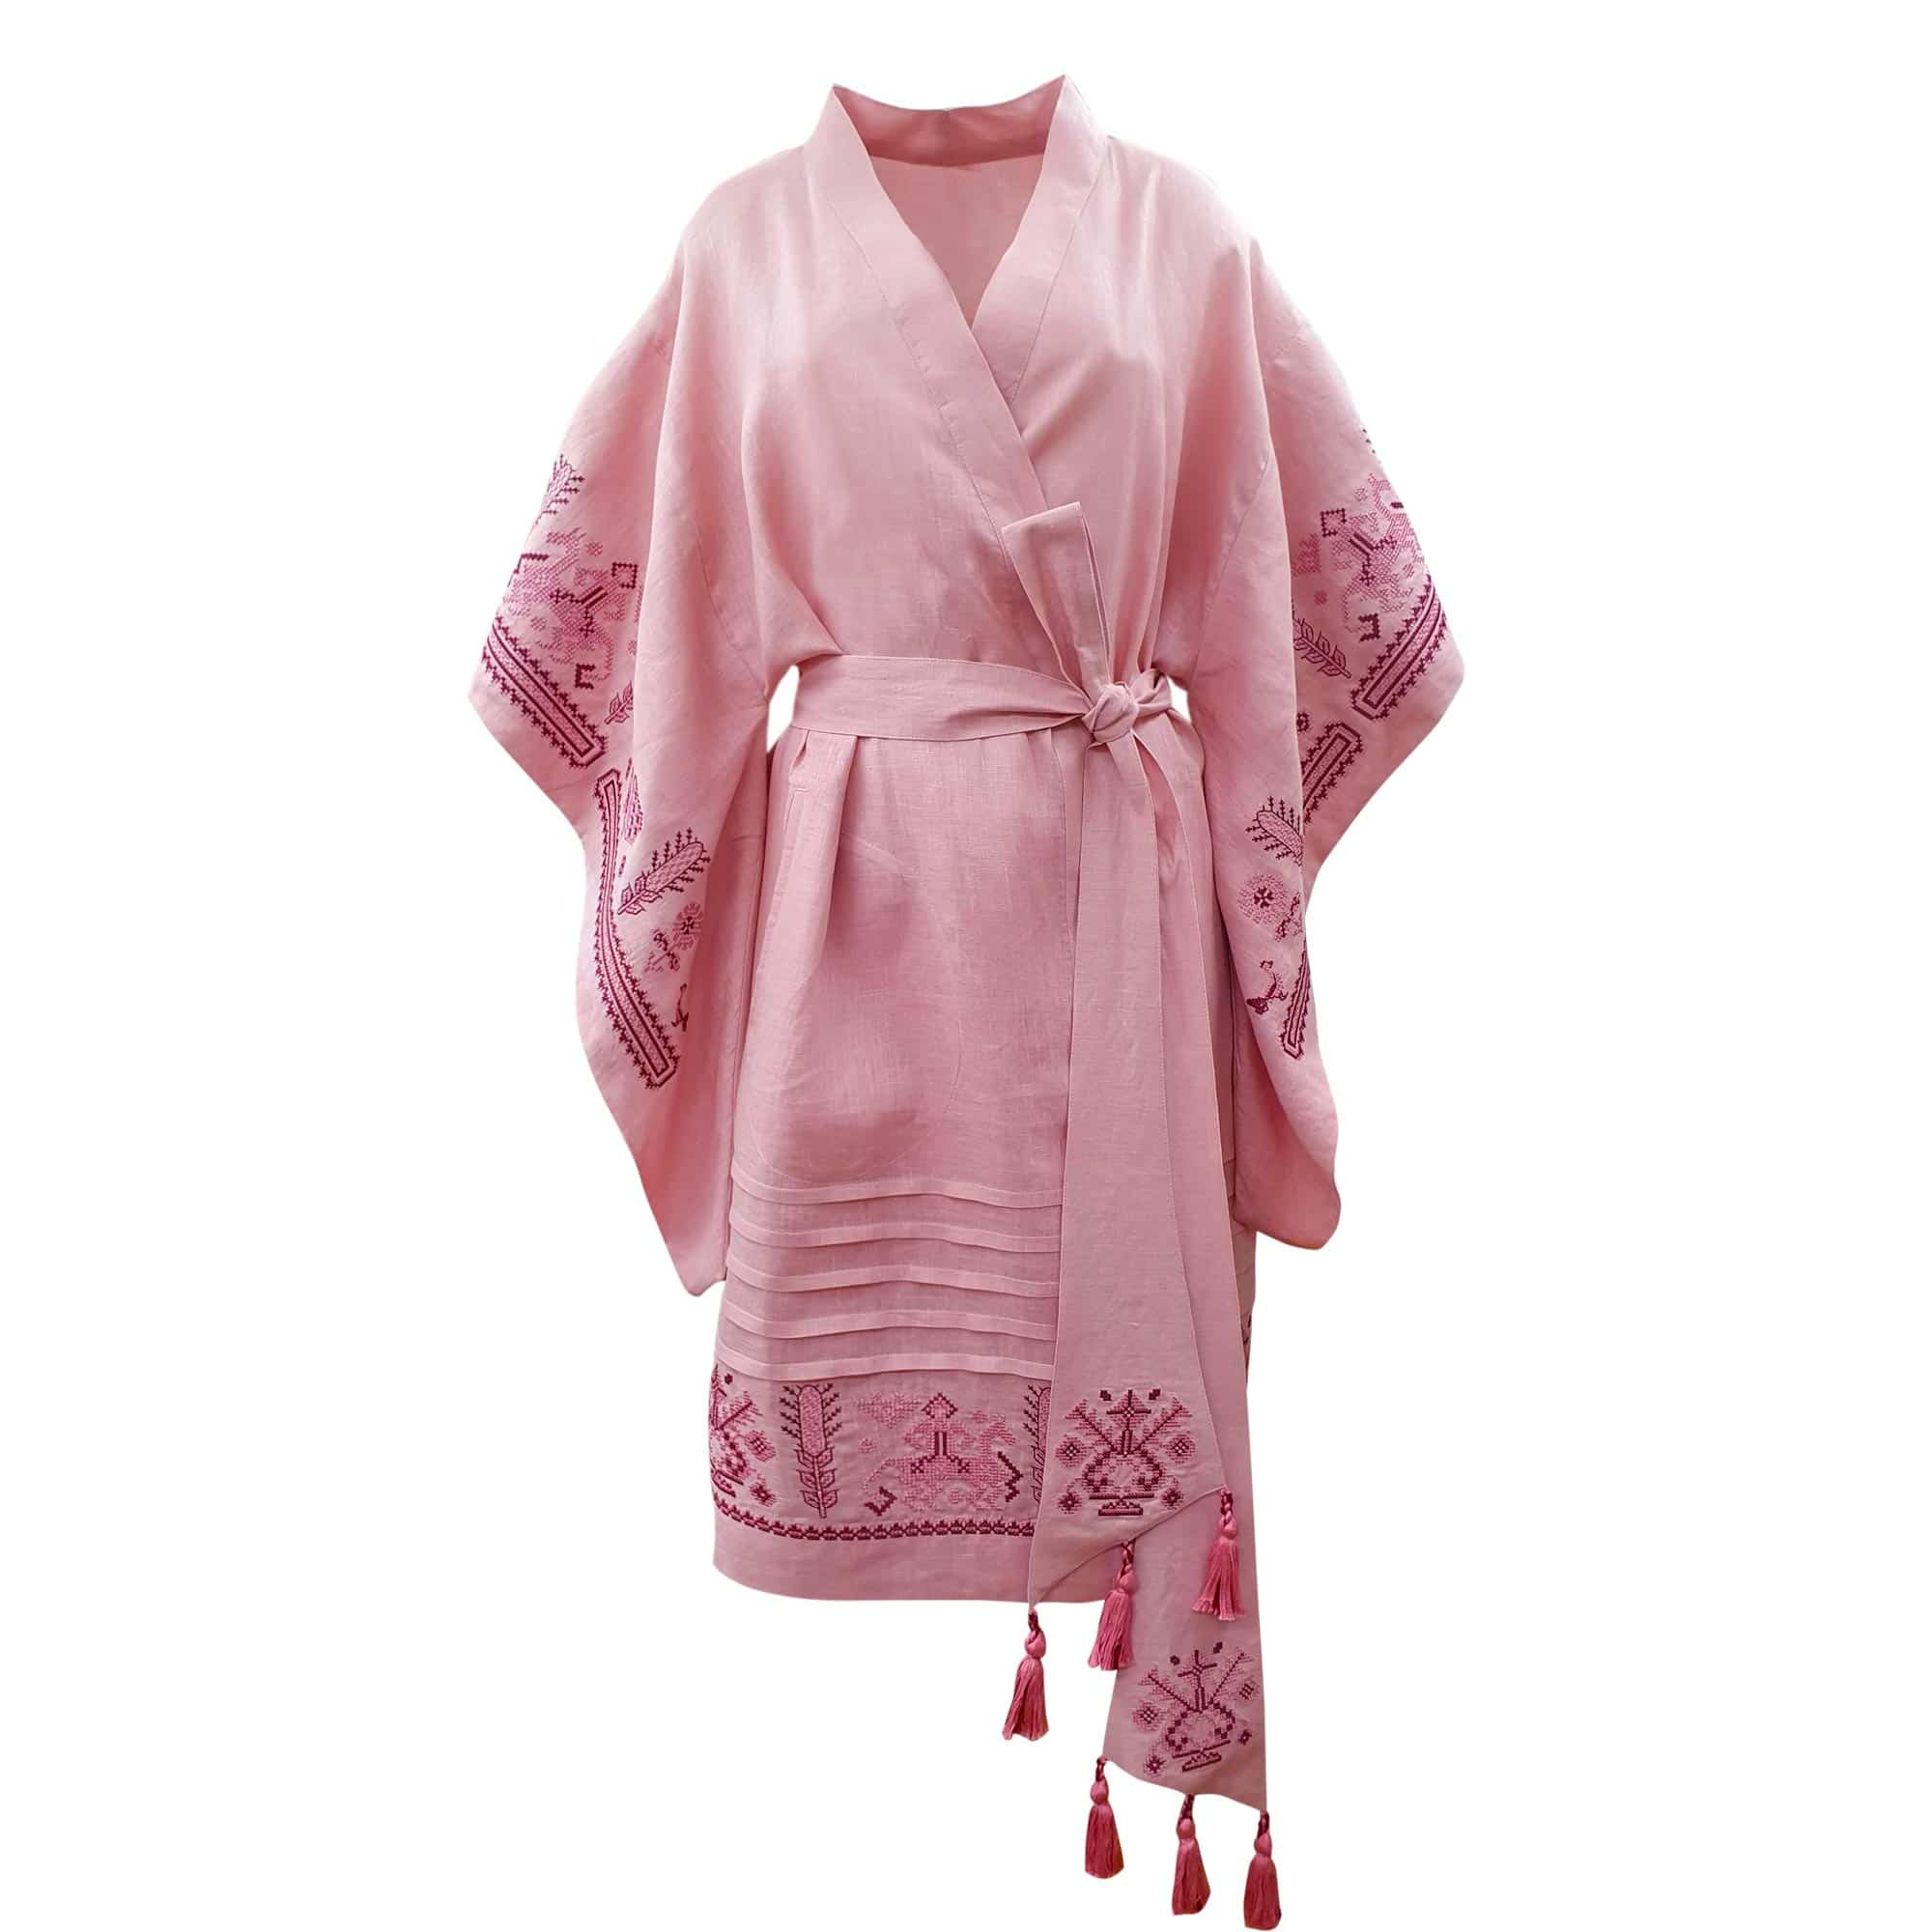 Robe with embroidery